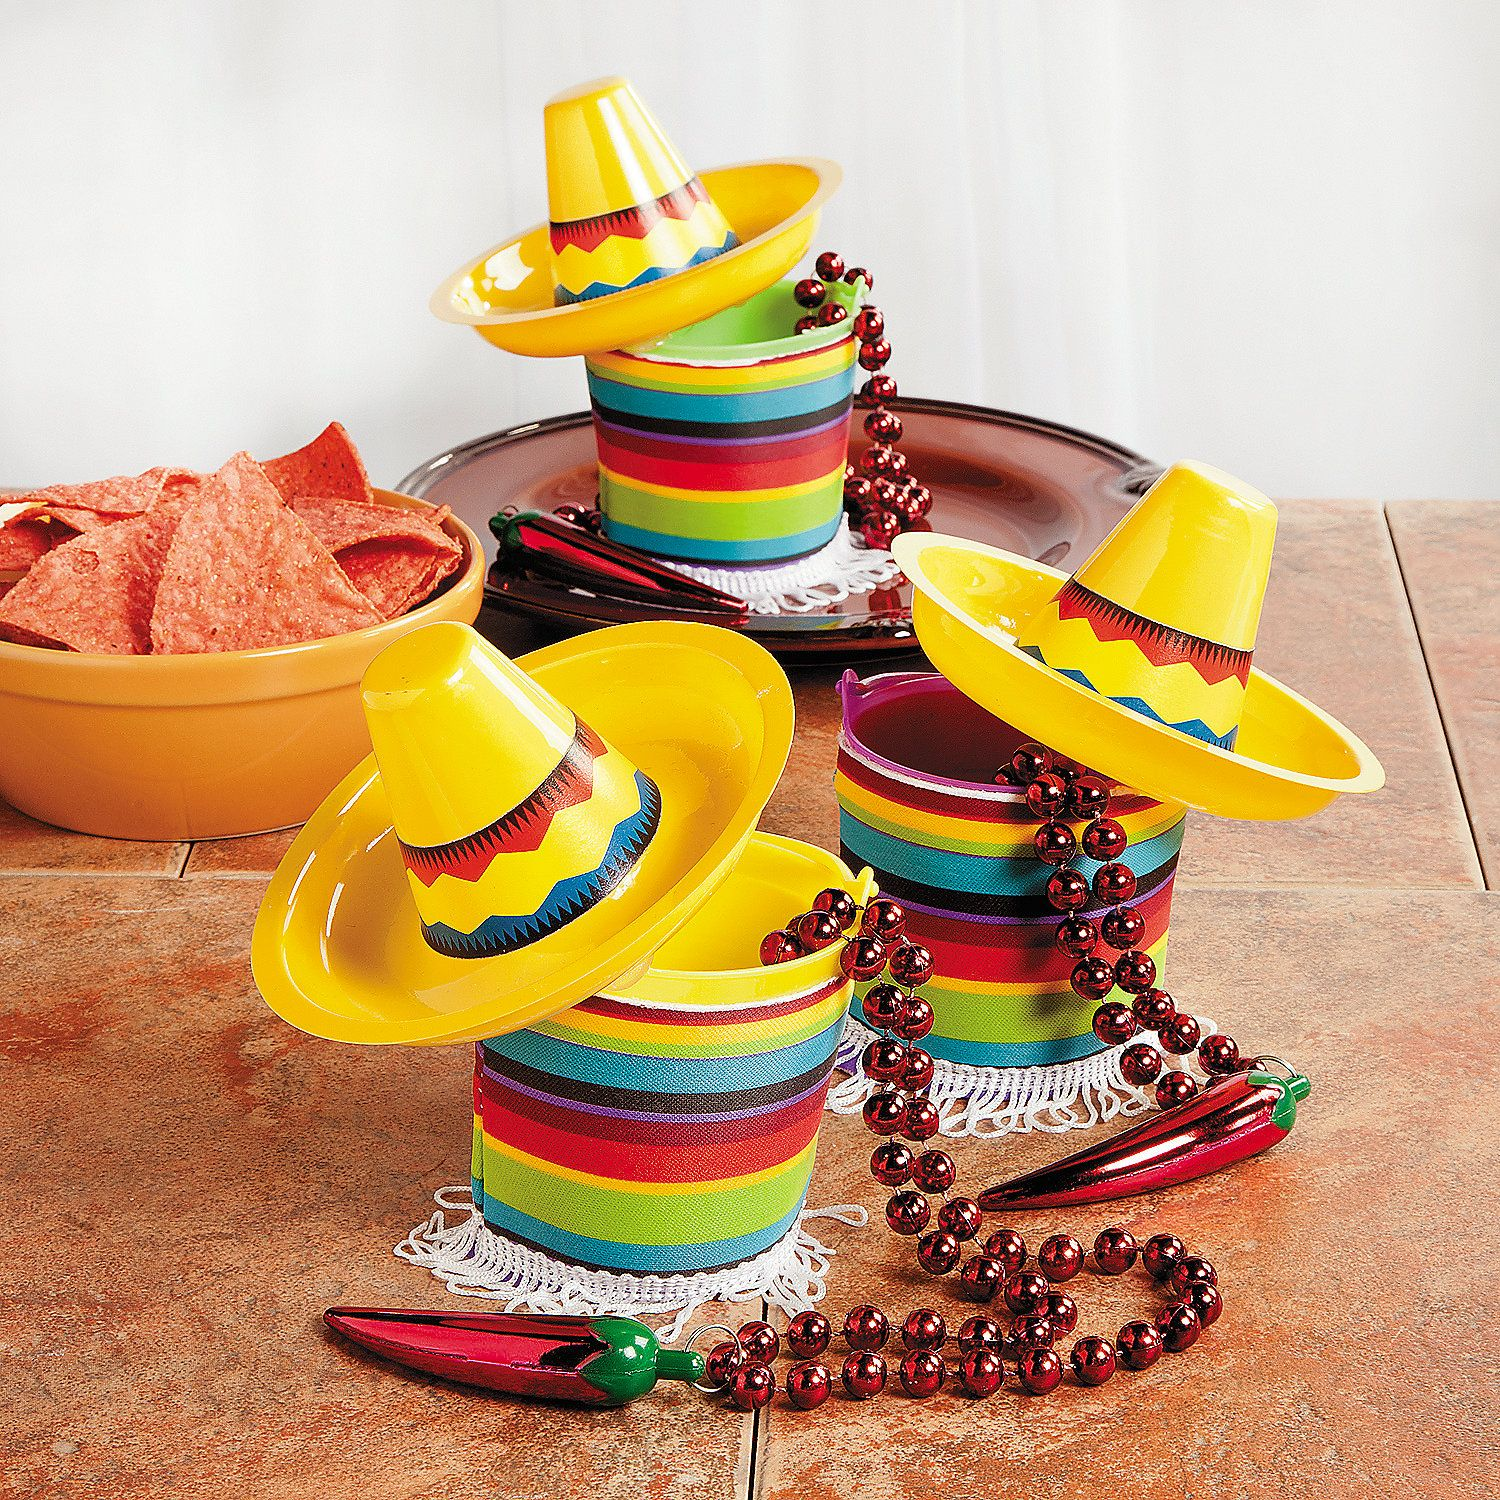 Sombrero Pails---Looking For A Fun Way To Fire Up Your